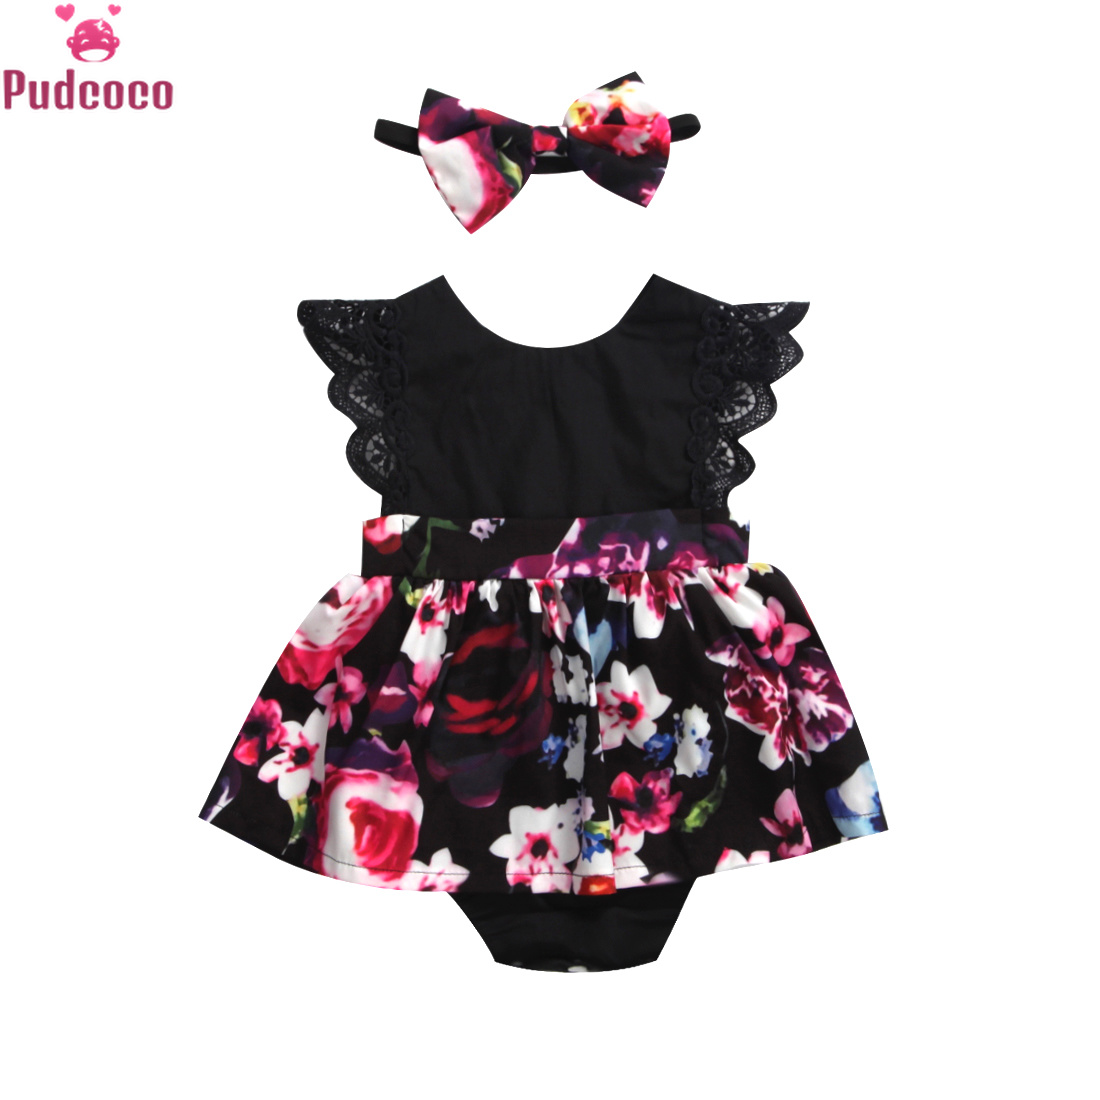 2Newborn Baby Infant Girl Romper Tutu Dress Headband Floral Outfits Party Dress